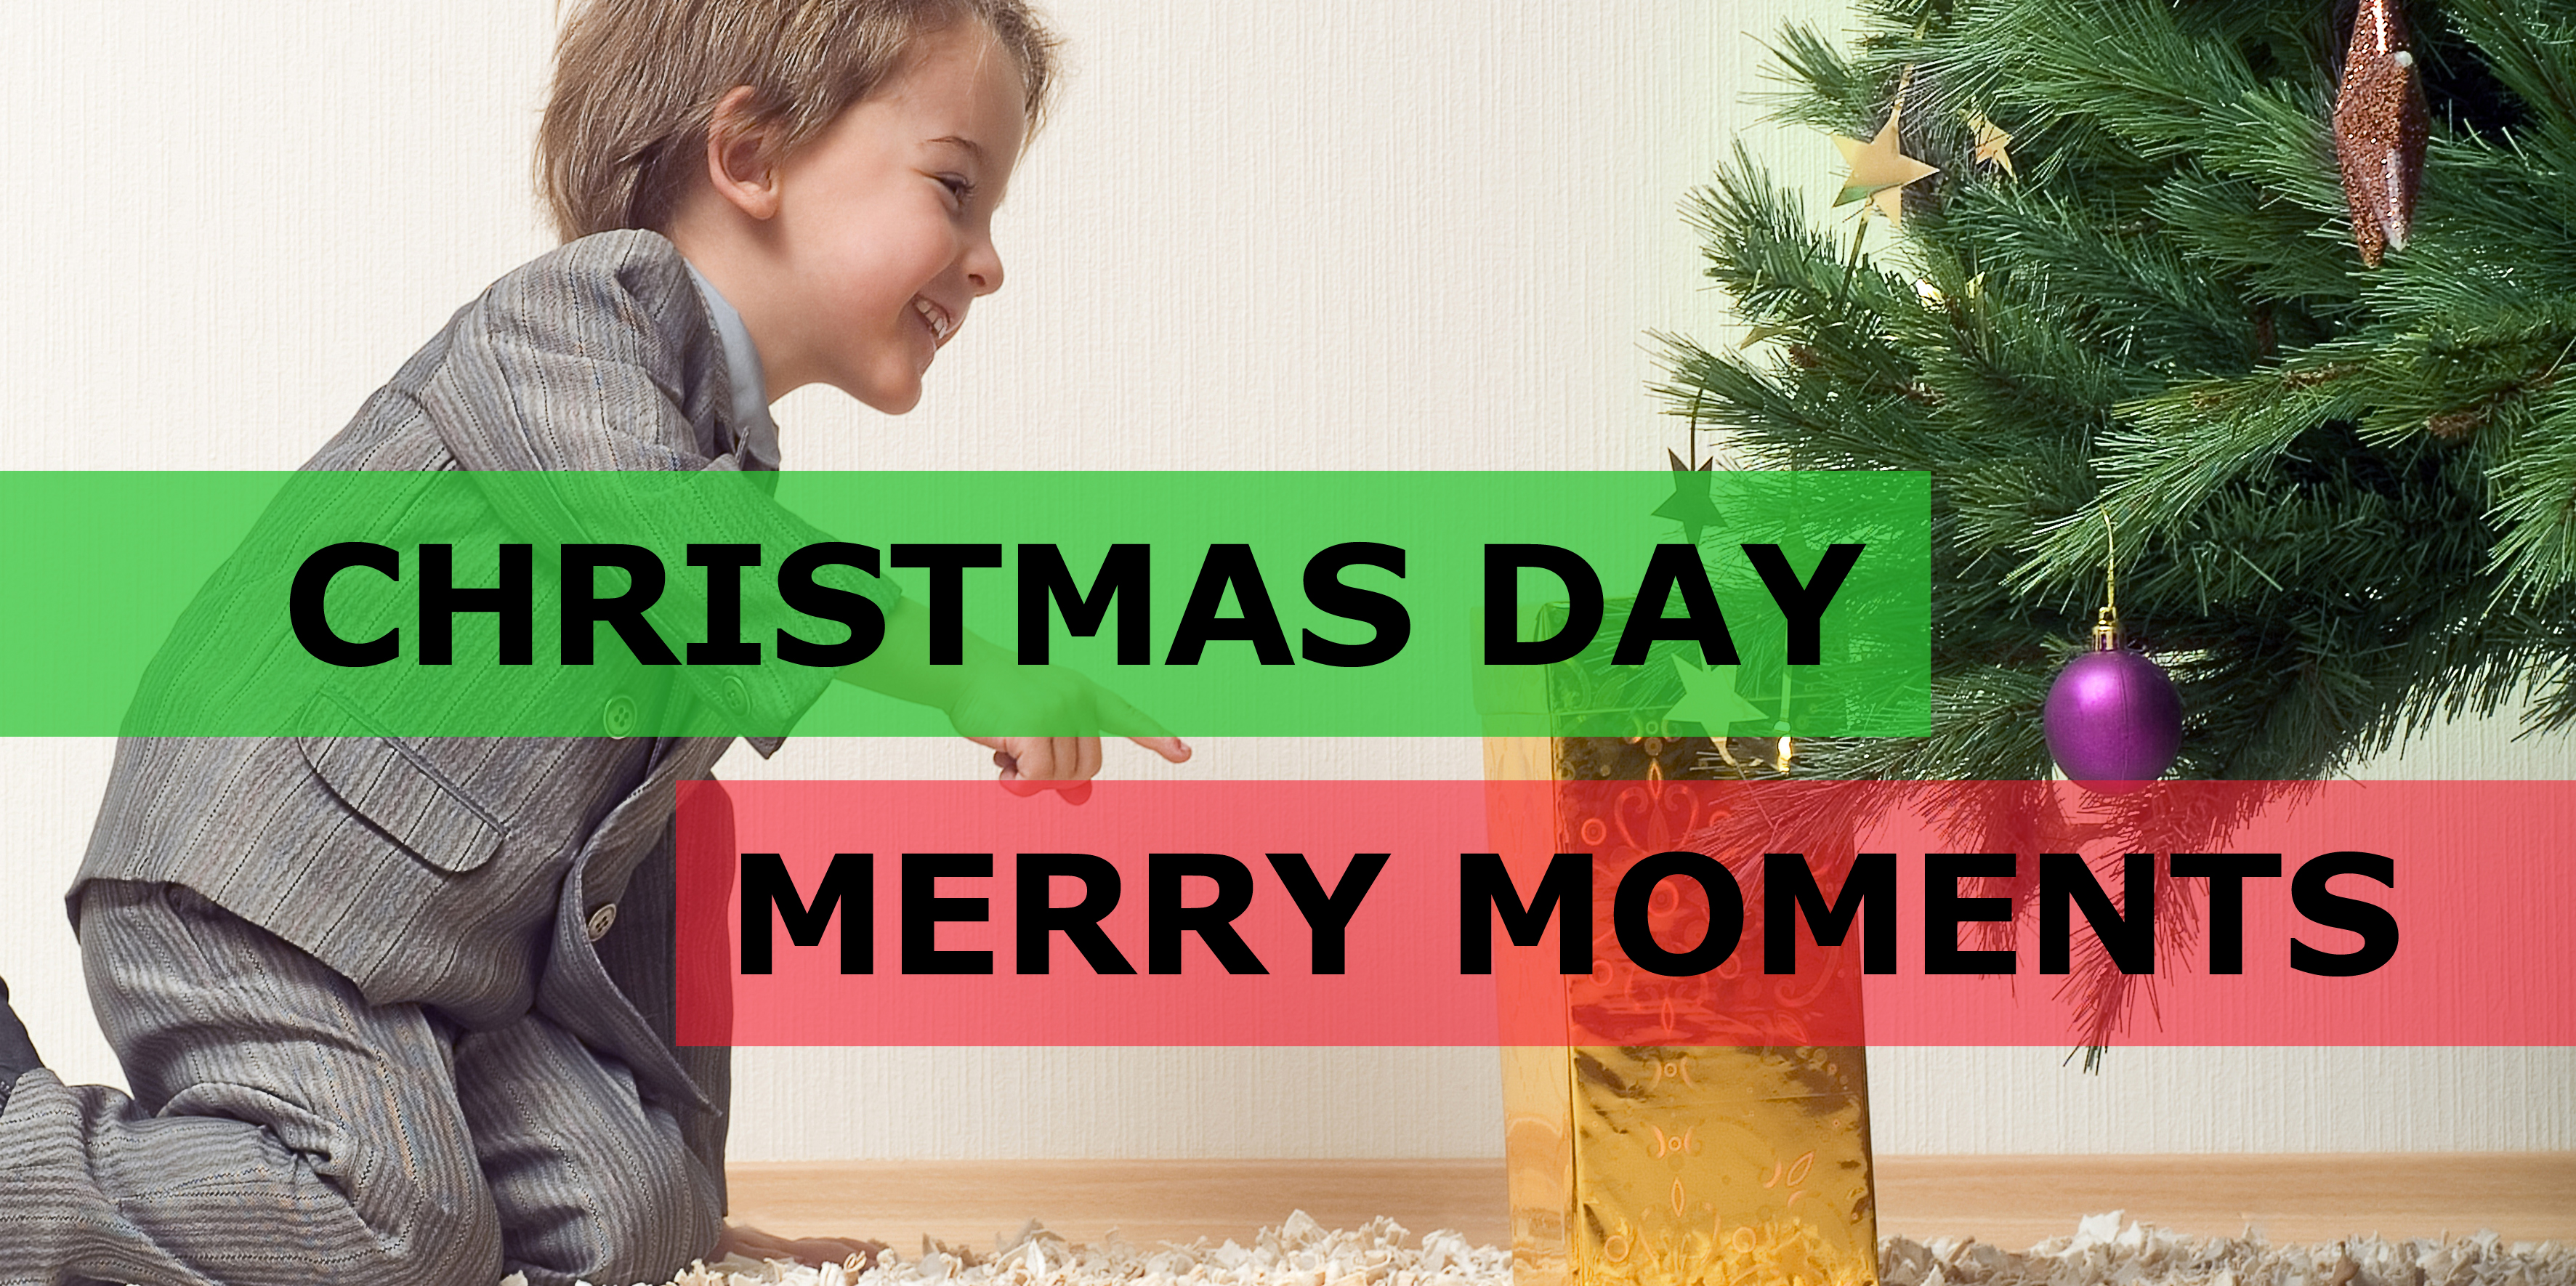 Christmas Day and Merry Moments